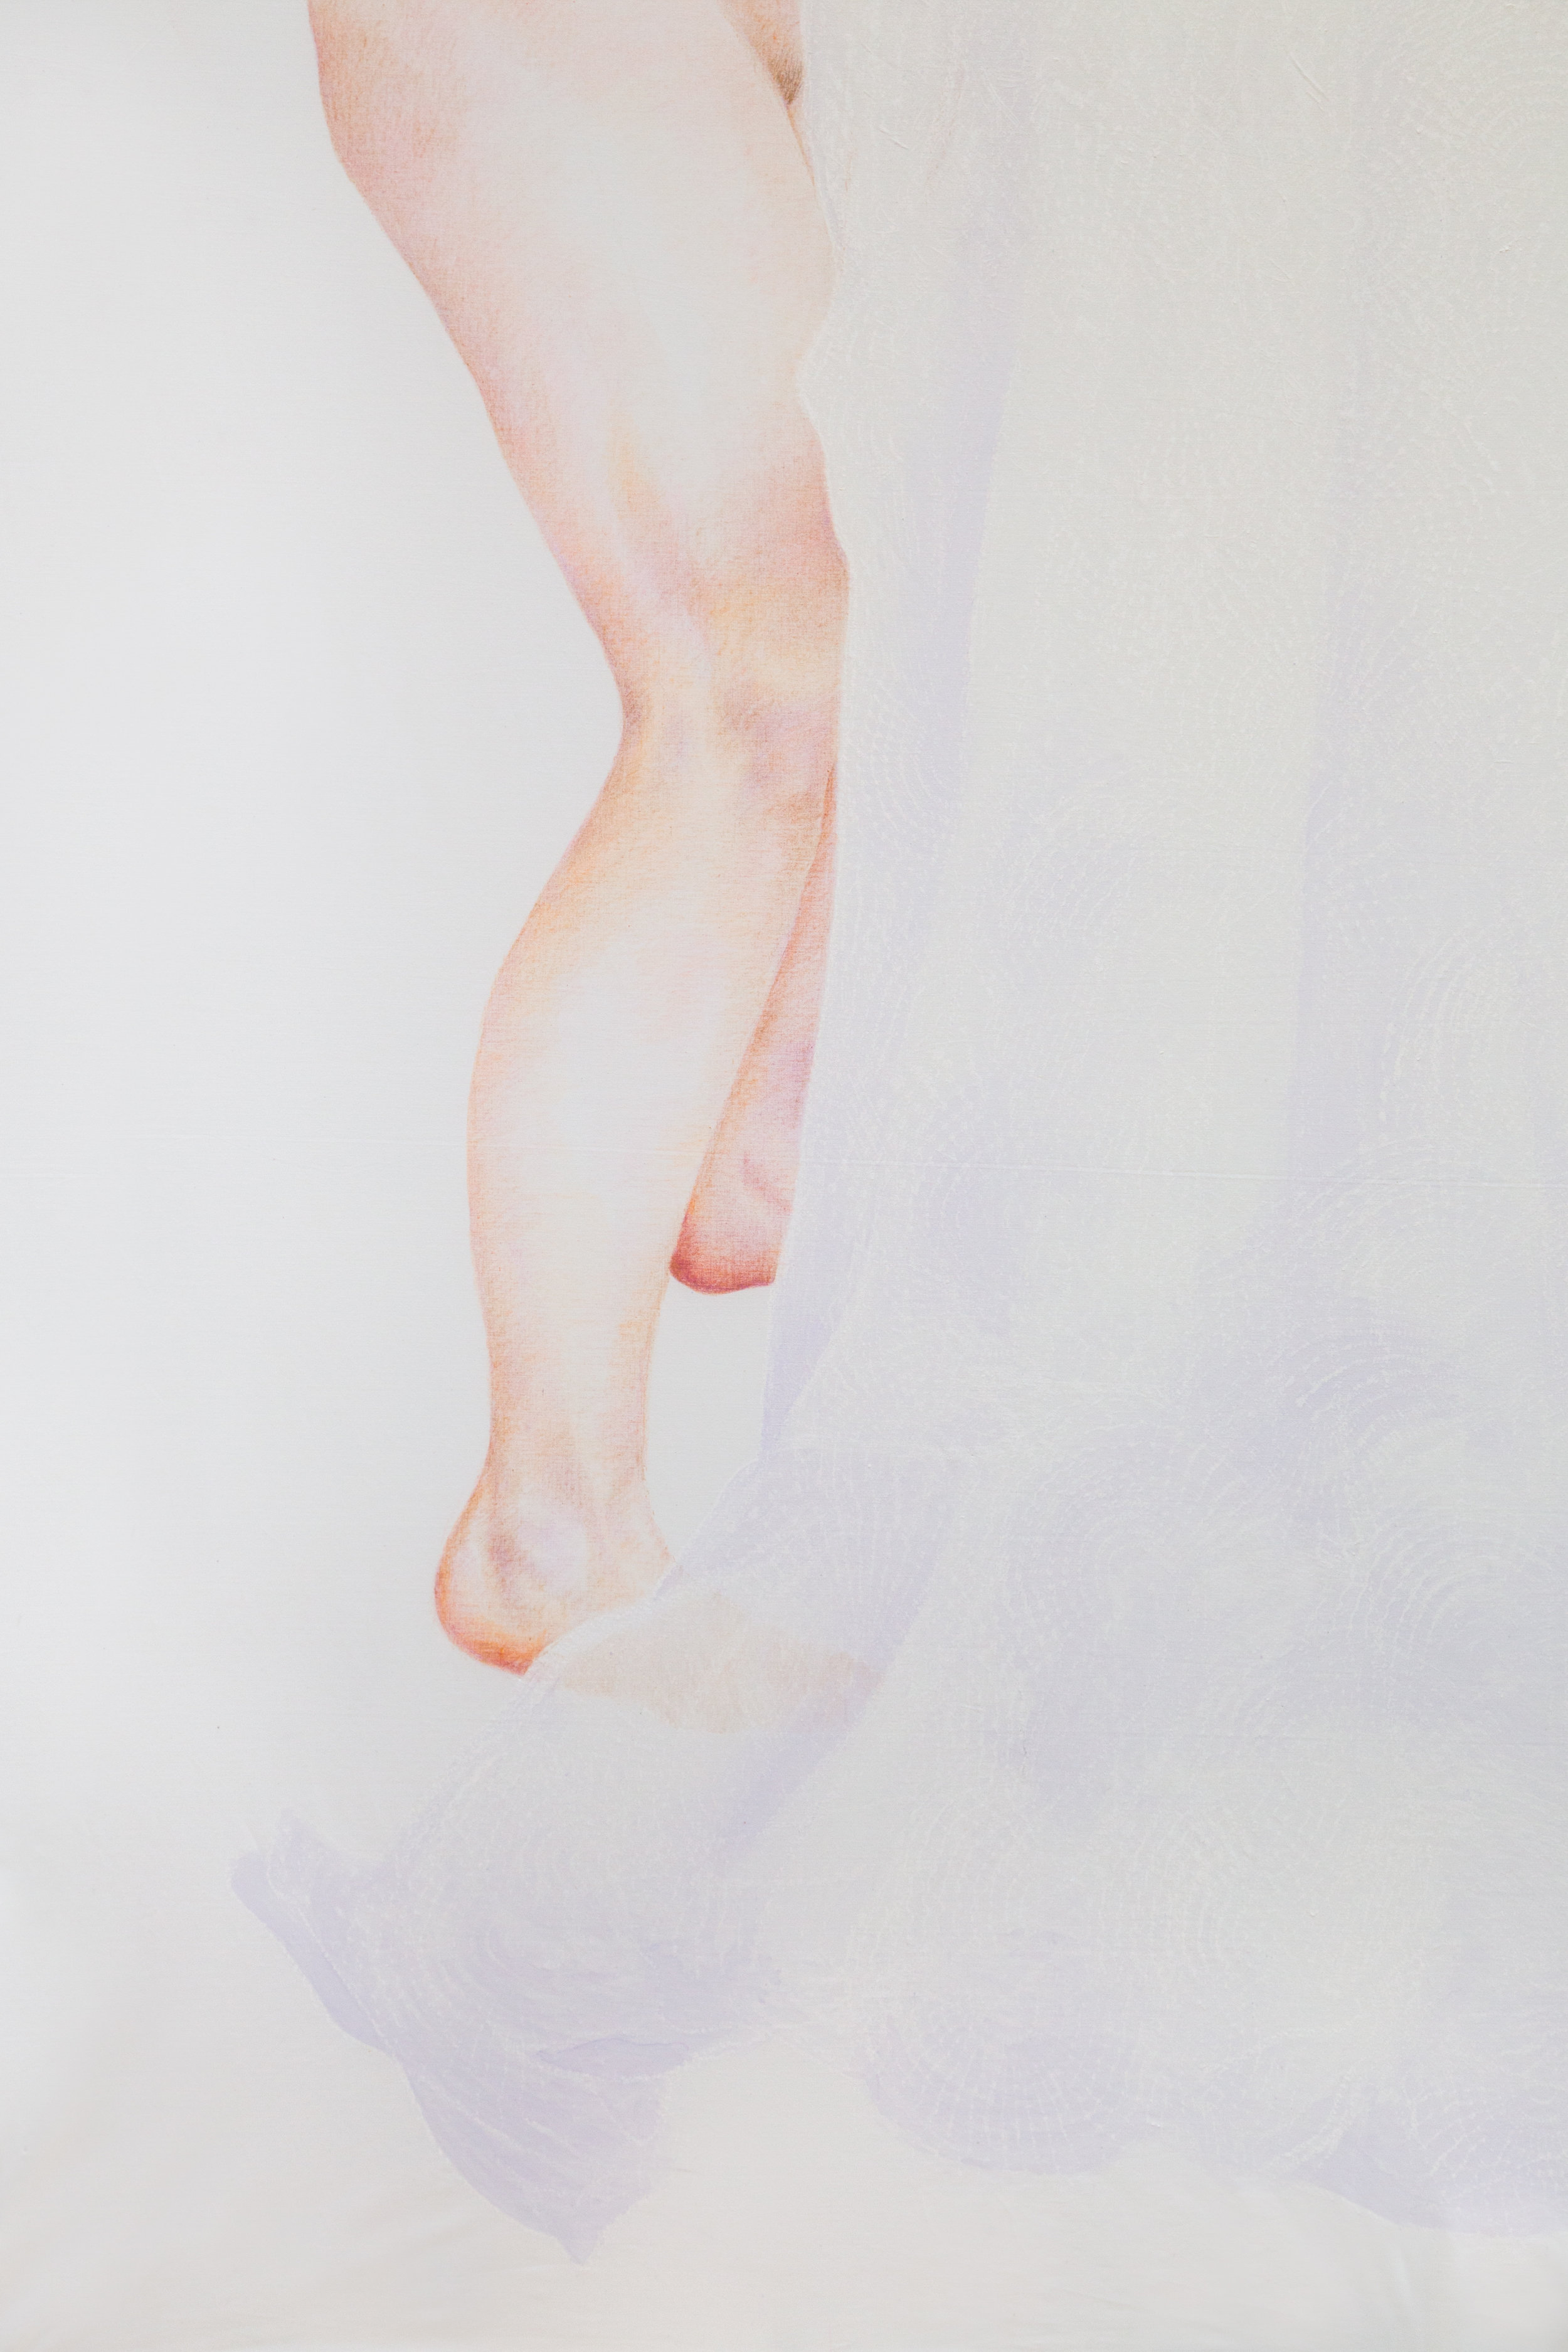 Dressed in White (detail)